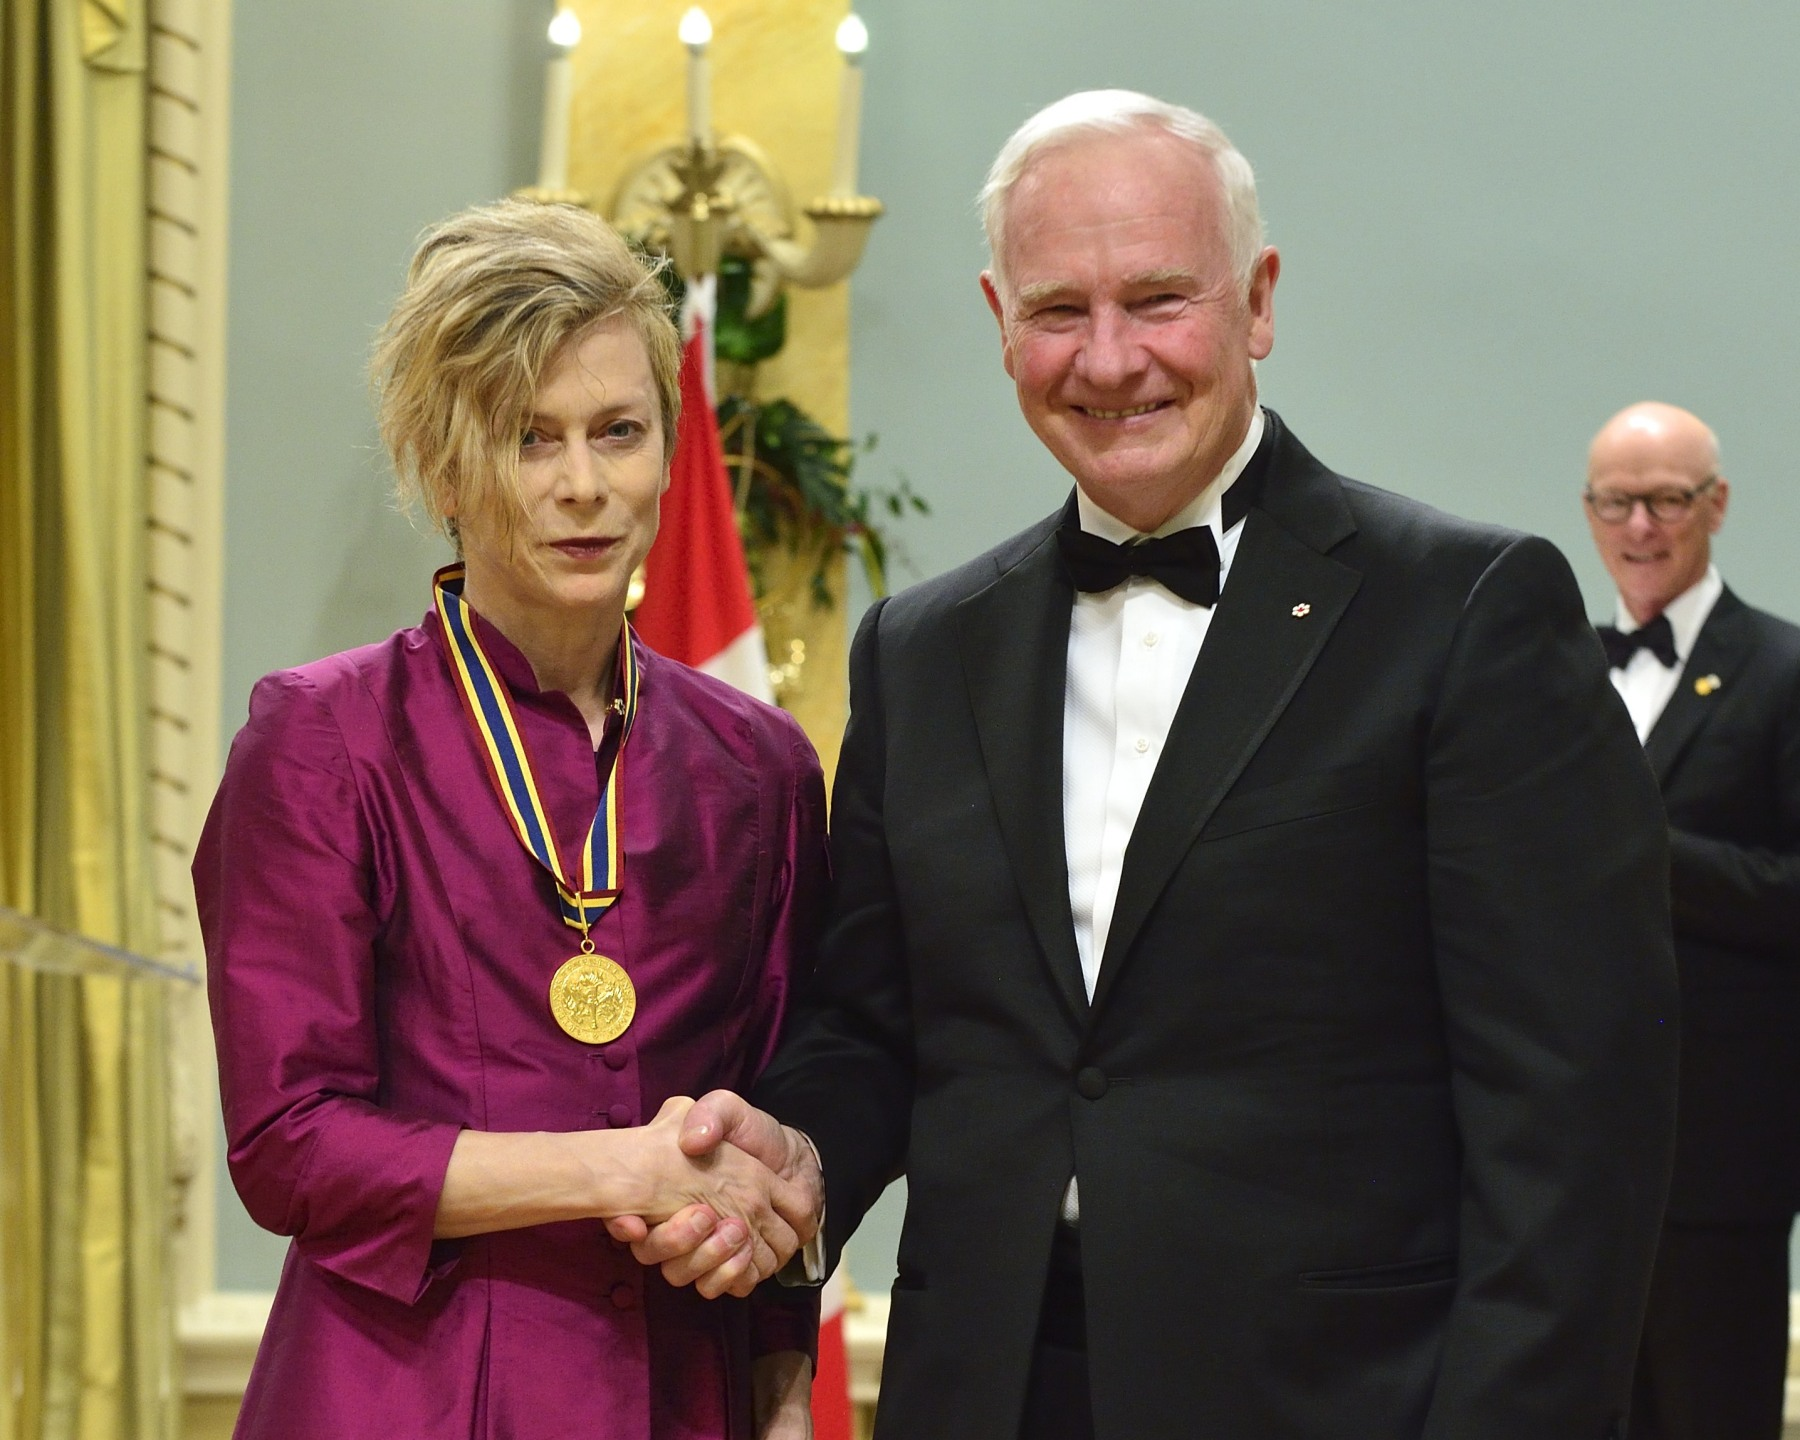 Ms. Louise Lecavalier, dancer and choreographer, received a GGPAA for Lifetime Artistic Achievement Award.